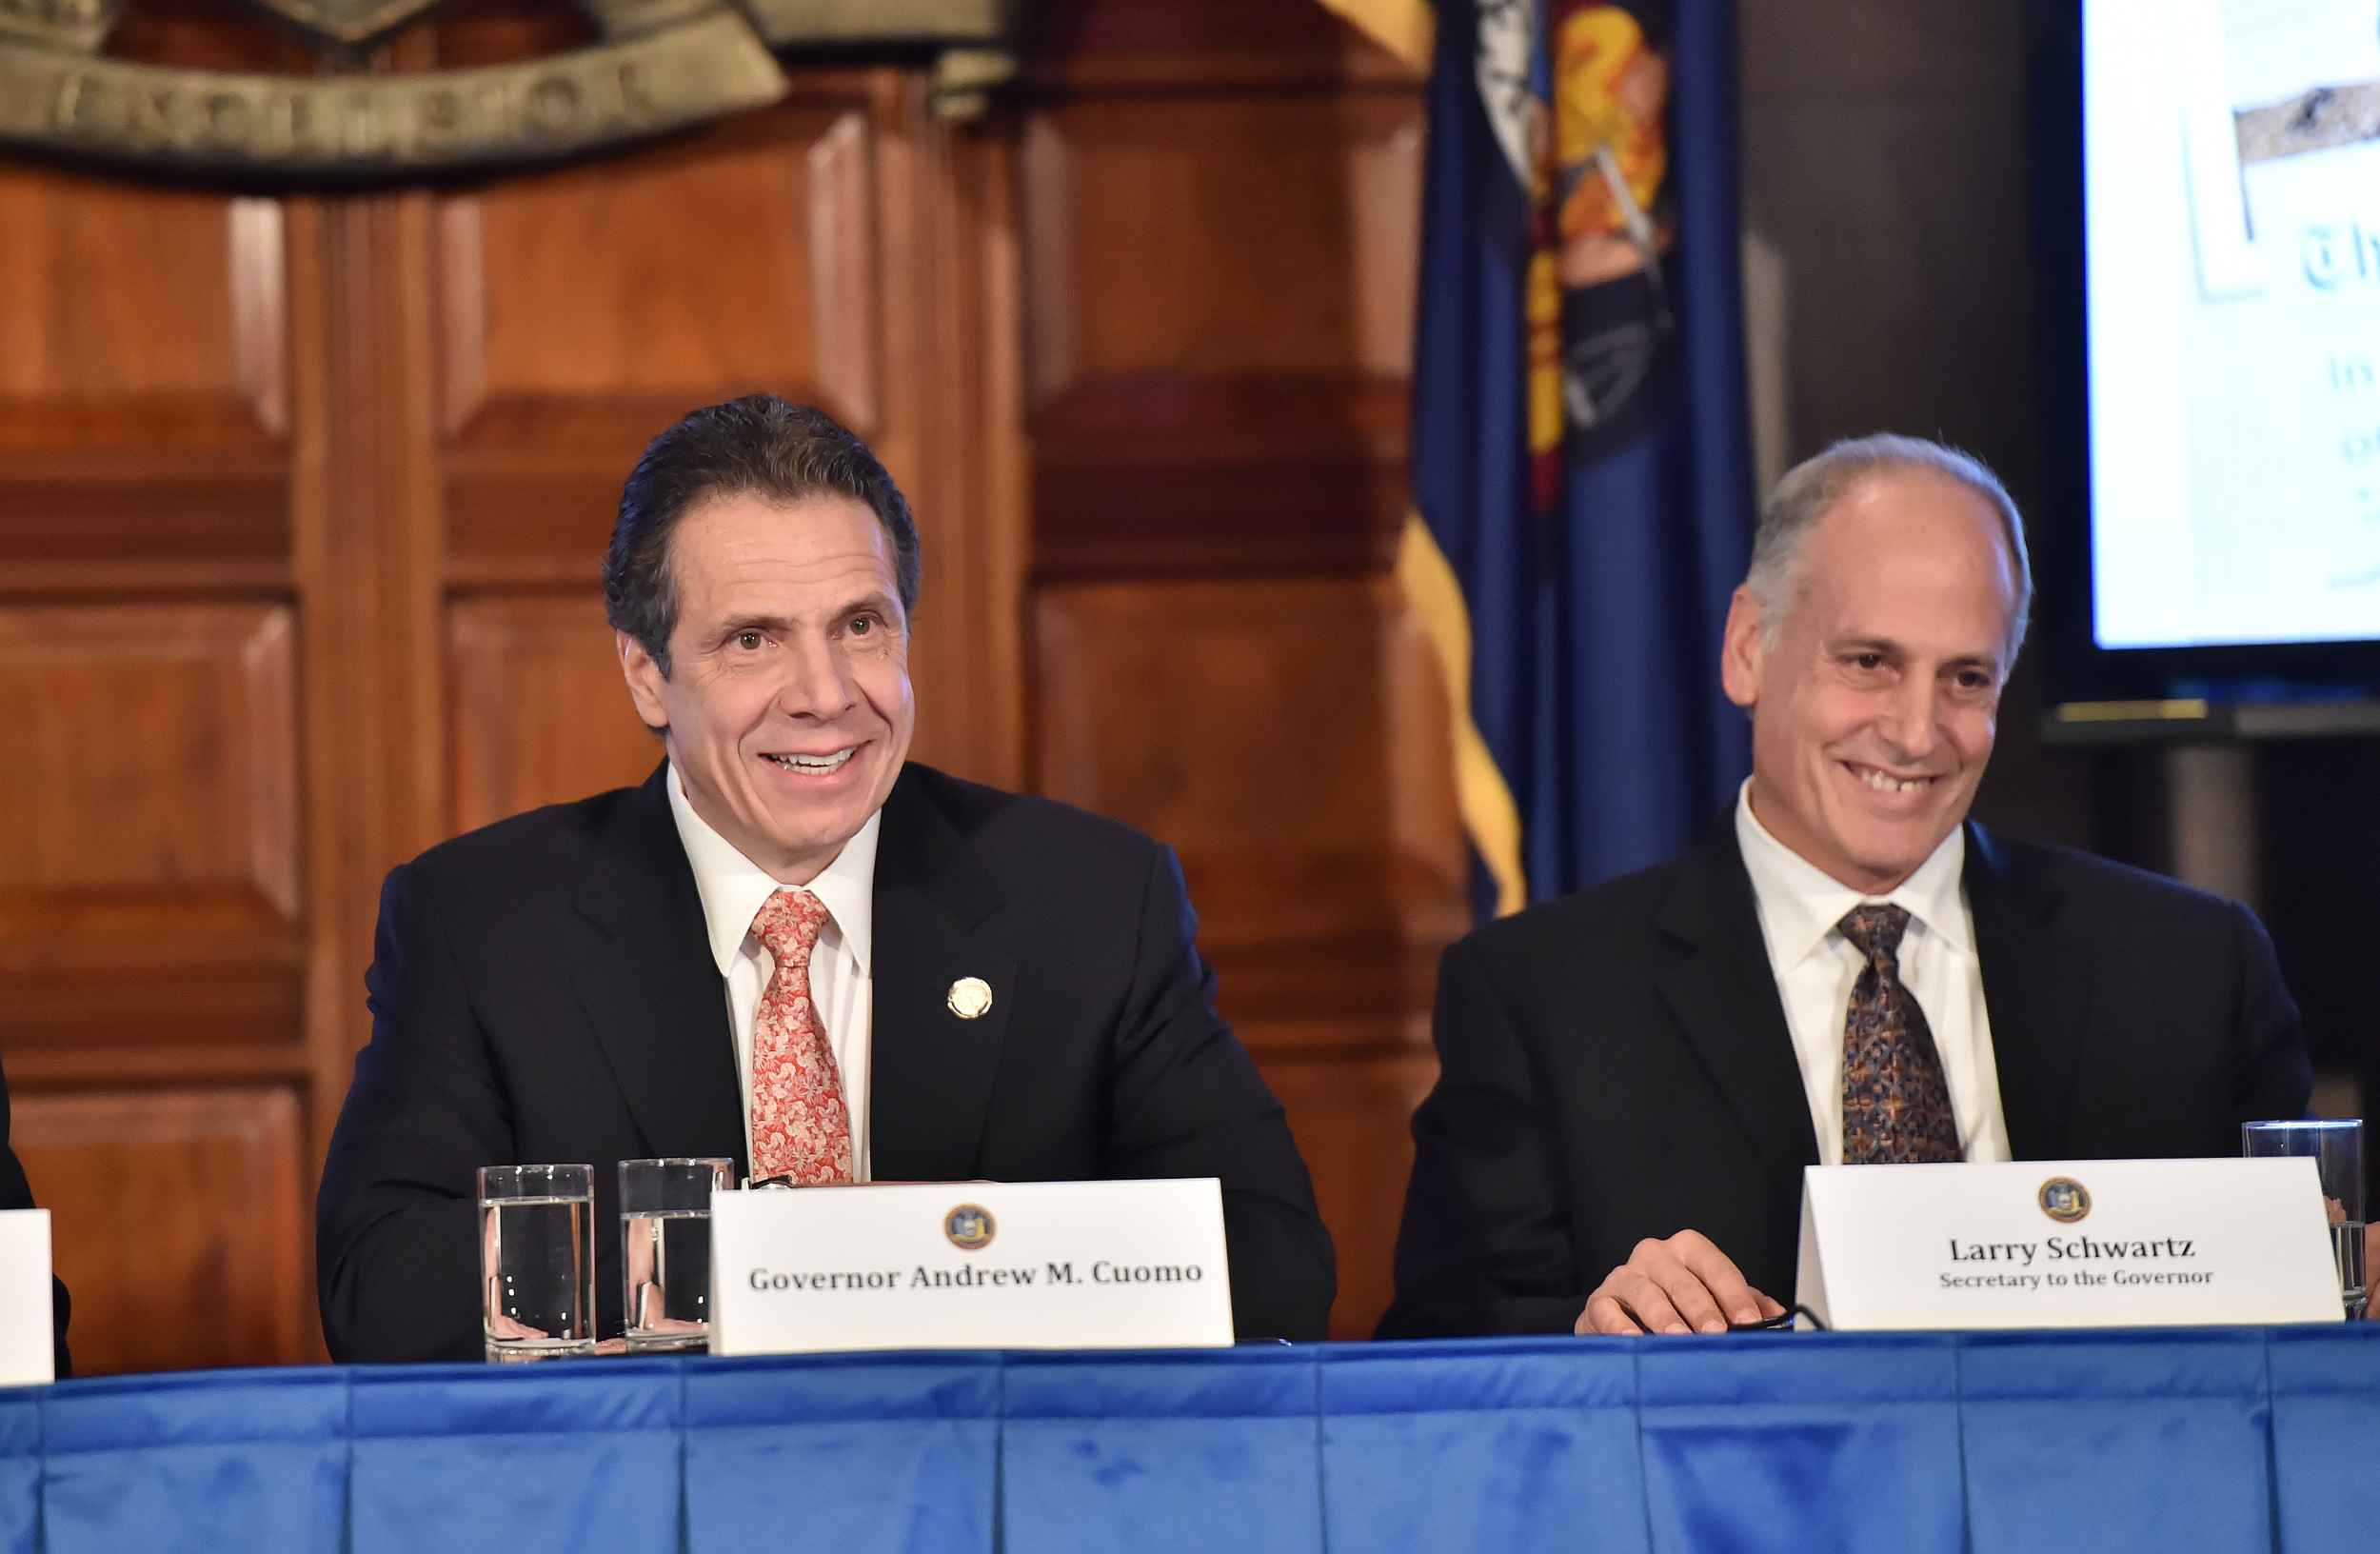 Governor  Andrew Cuomo , left, with his former secretary,  Lawrence Schwartz , at a cabinet meeting onDecember 17, 2014. Mr. Schwartz had disappeared from the public after Governor Cuomo's office announced on January 11, 2015, that Mr. Schwartz was going to depart for the private sector. However, a bombshell report published by  Fredric Dicker  in  The New York Post  revealed that Governor Cuomo had misrepresented the truth about Mr. Schwartz's whereabouts. Source : Official Photograph/Kevin P. Coughlin,Office of the Governor/Flickr